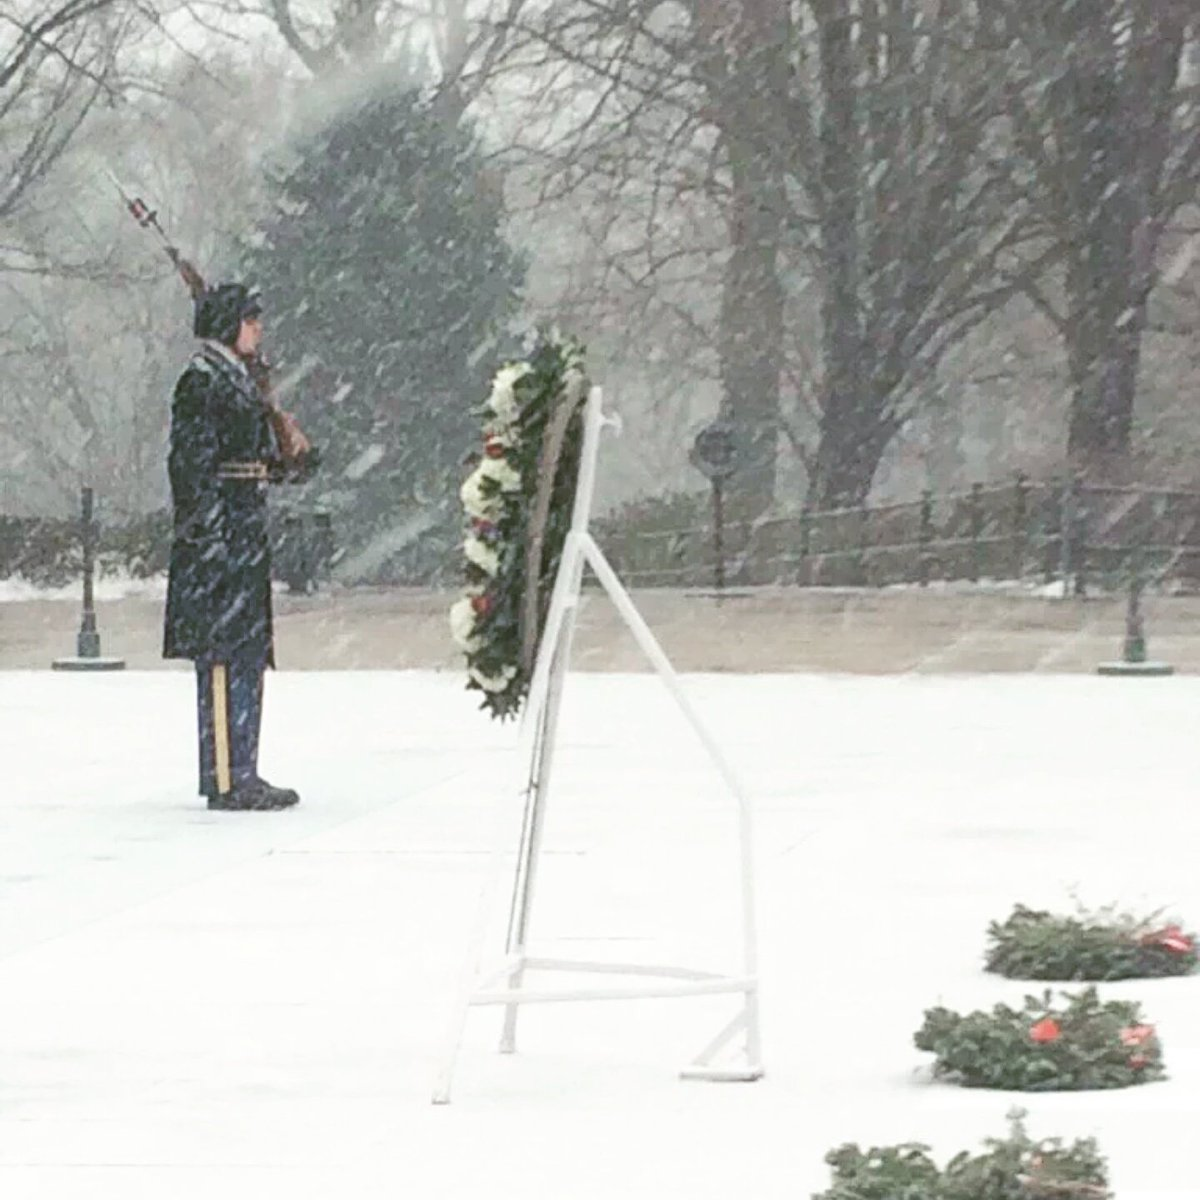 Soldiers Guard Tomb of Unknowns During Historic Snowstorm - https://t.co/qs3uCBSO7P #blizzard2016 https://t.co/BK5kvWSEPT